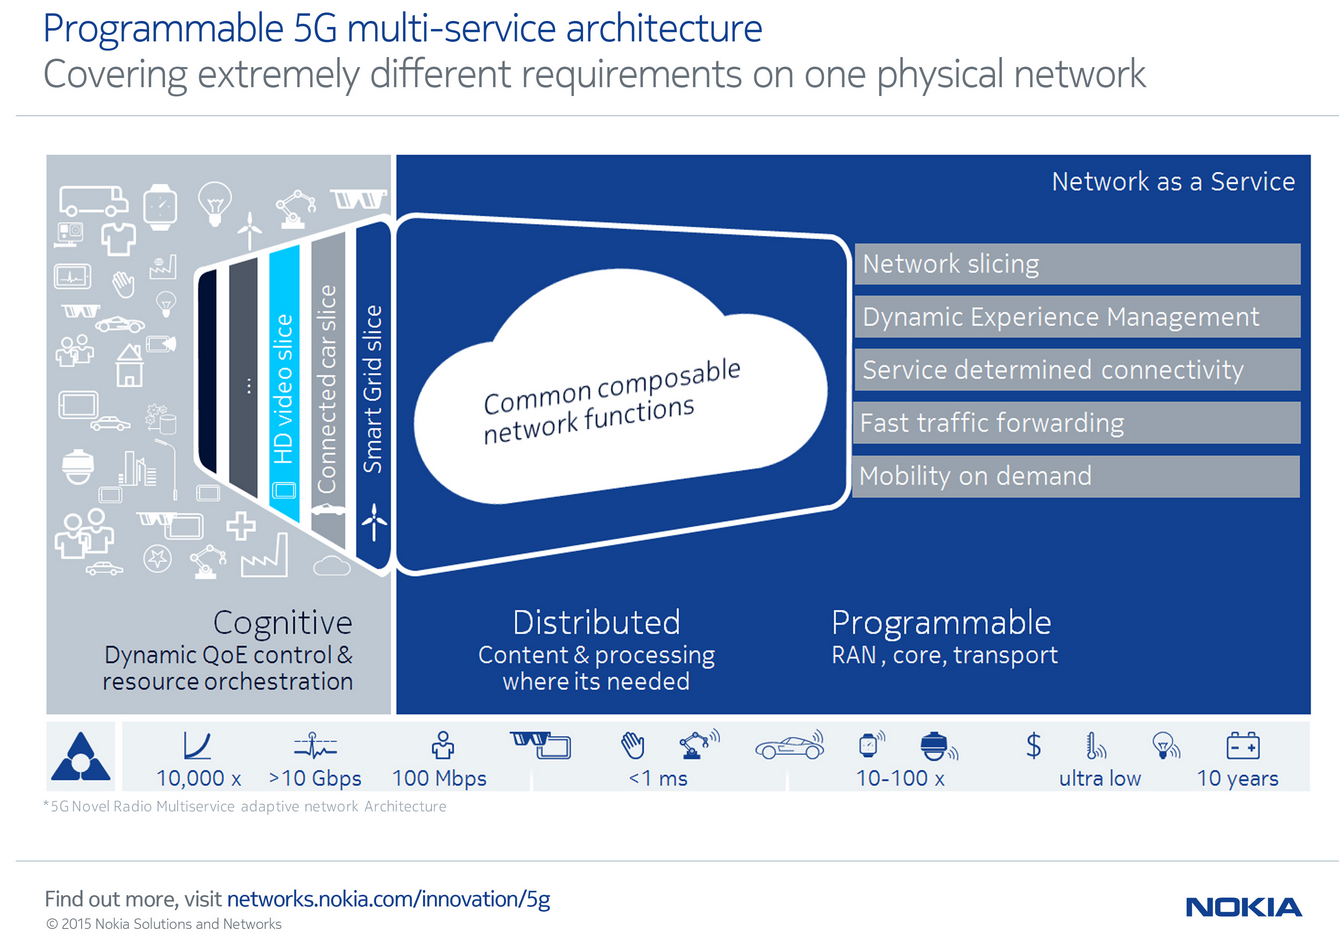 Converge Network Digest Cloudpath Wireless Diagram Nokia Networks And Du A Leading Mobile Operator In The Middle East Are Demonstrating 5g At This Weeks Gitex Event Dubai